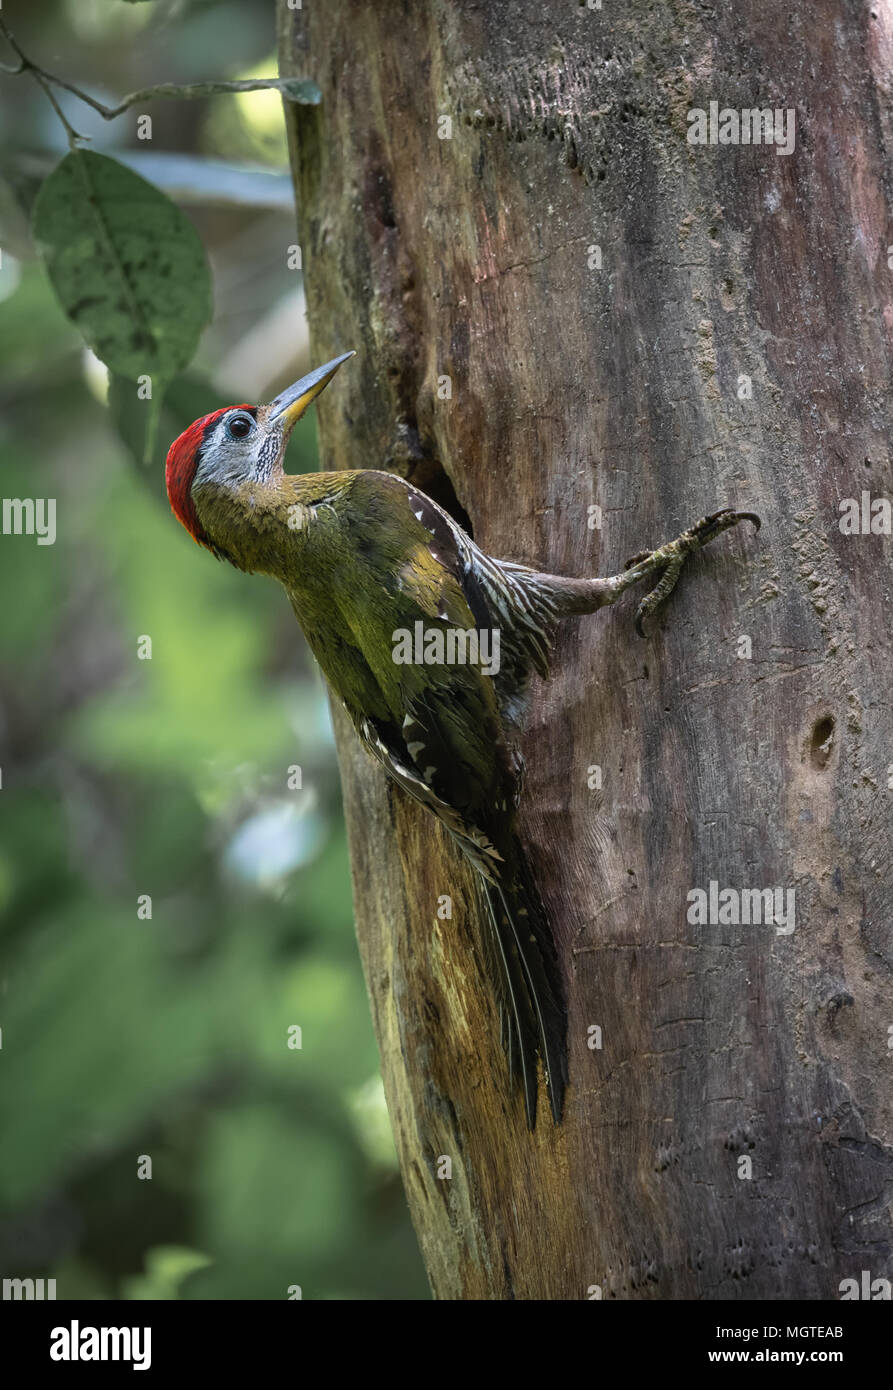 The streak-breasted woodpecker (Picus viridanus) is a species of bird in the family Picidae. Kaeng Krachan National Park, Thailand. - Stock Image